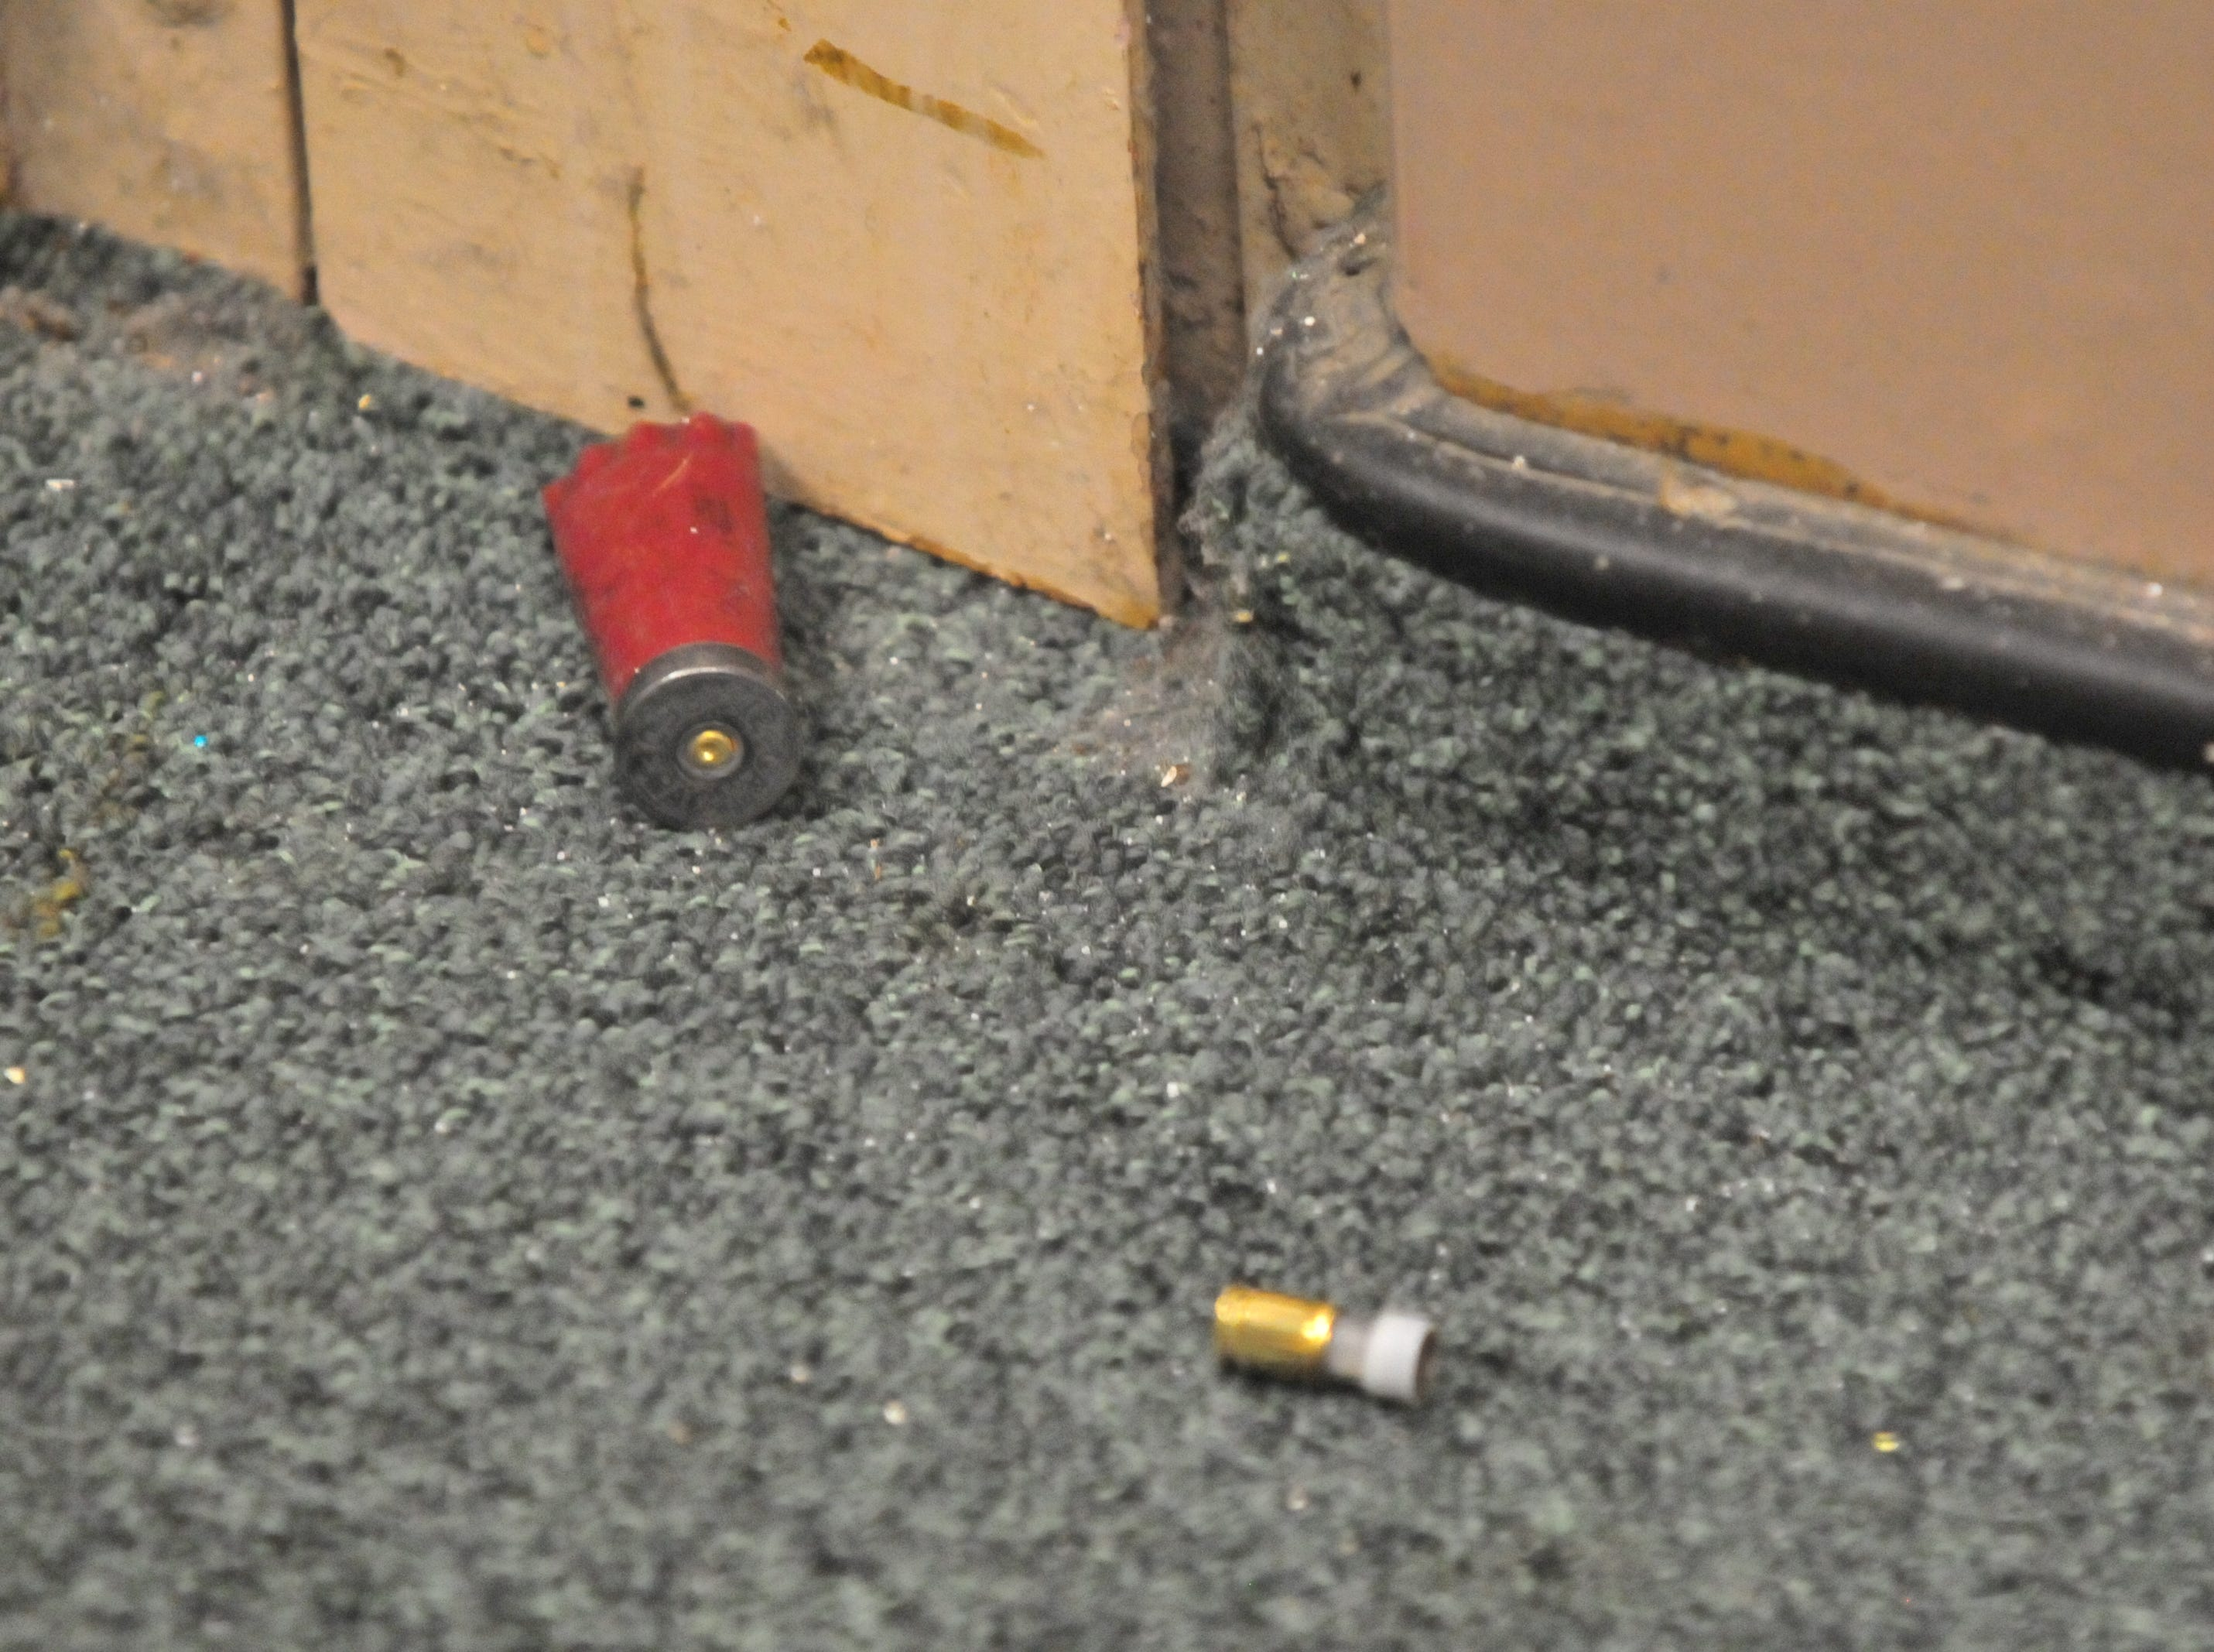 Spent shell casings litter the floor of a hallway inside the former Pleasant View school building.